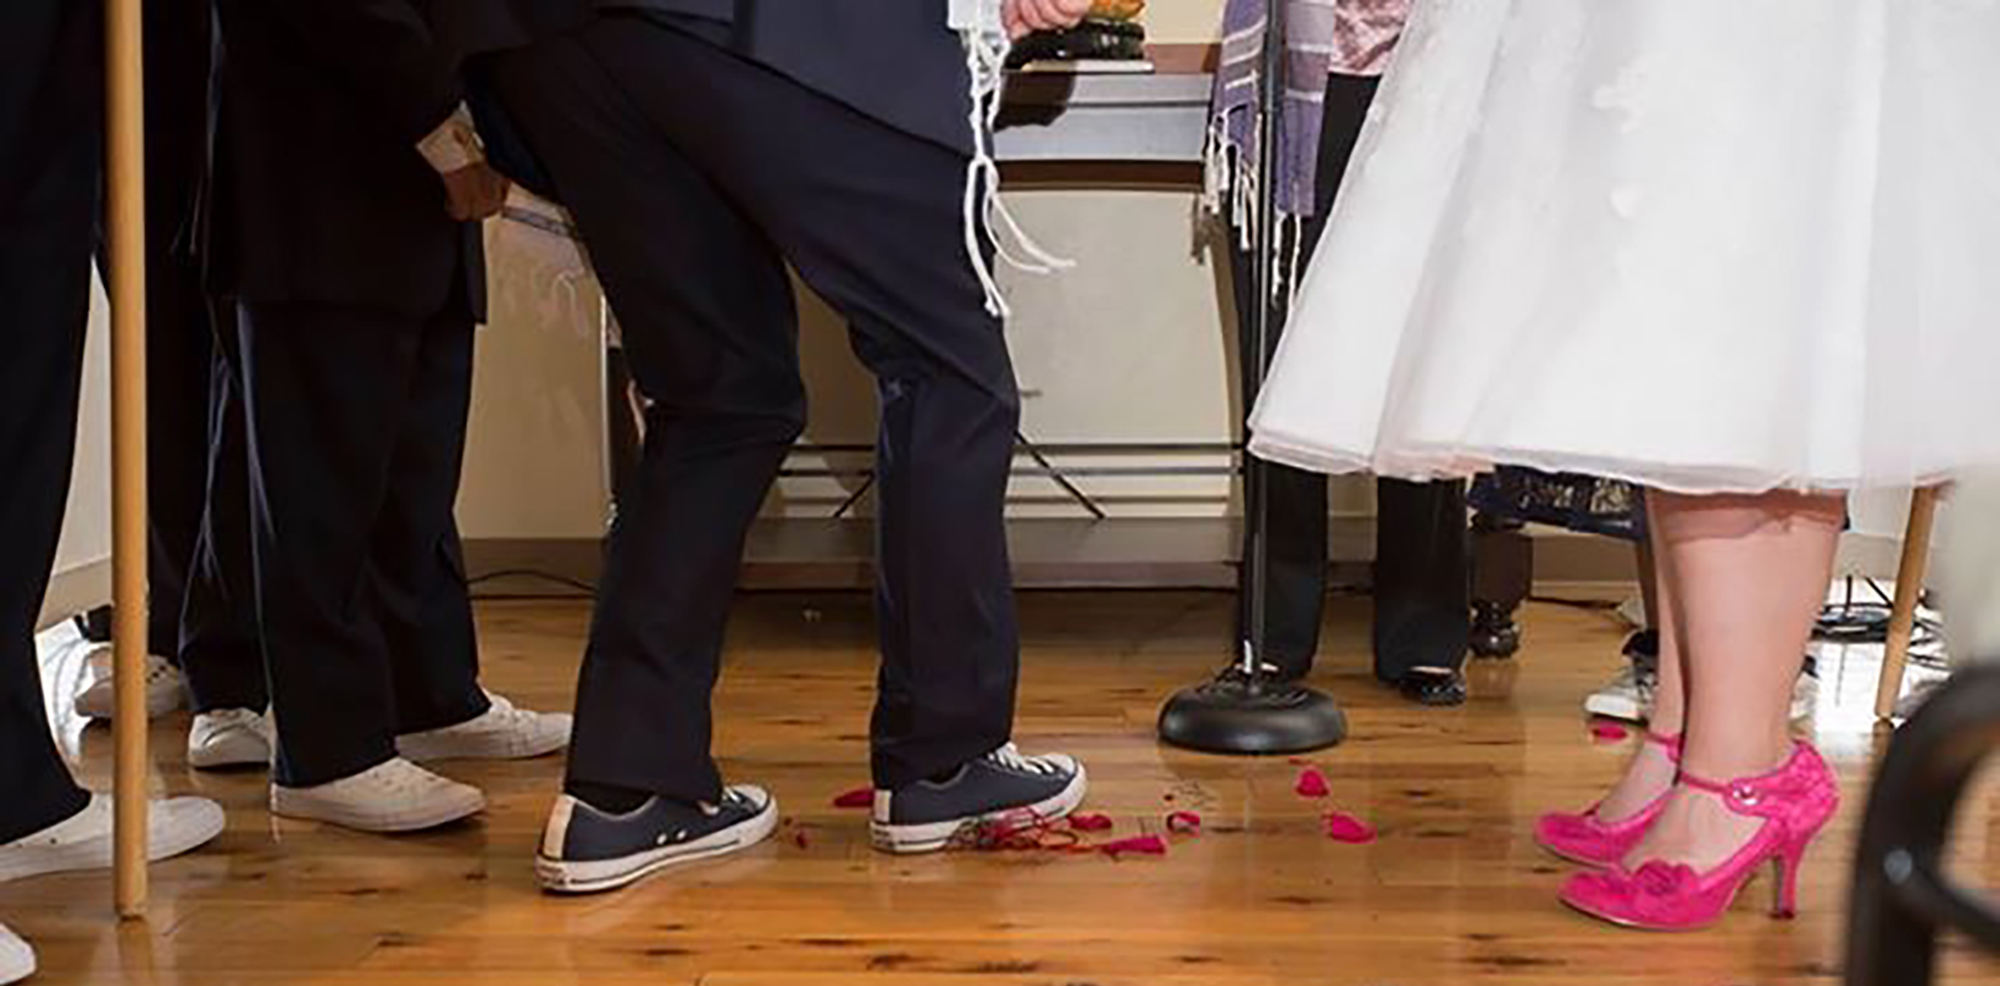 Breaking the wedding glass. Find local rabbis today